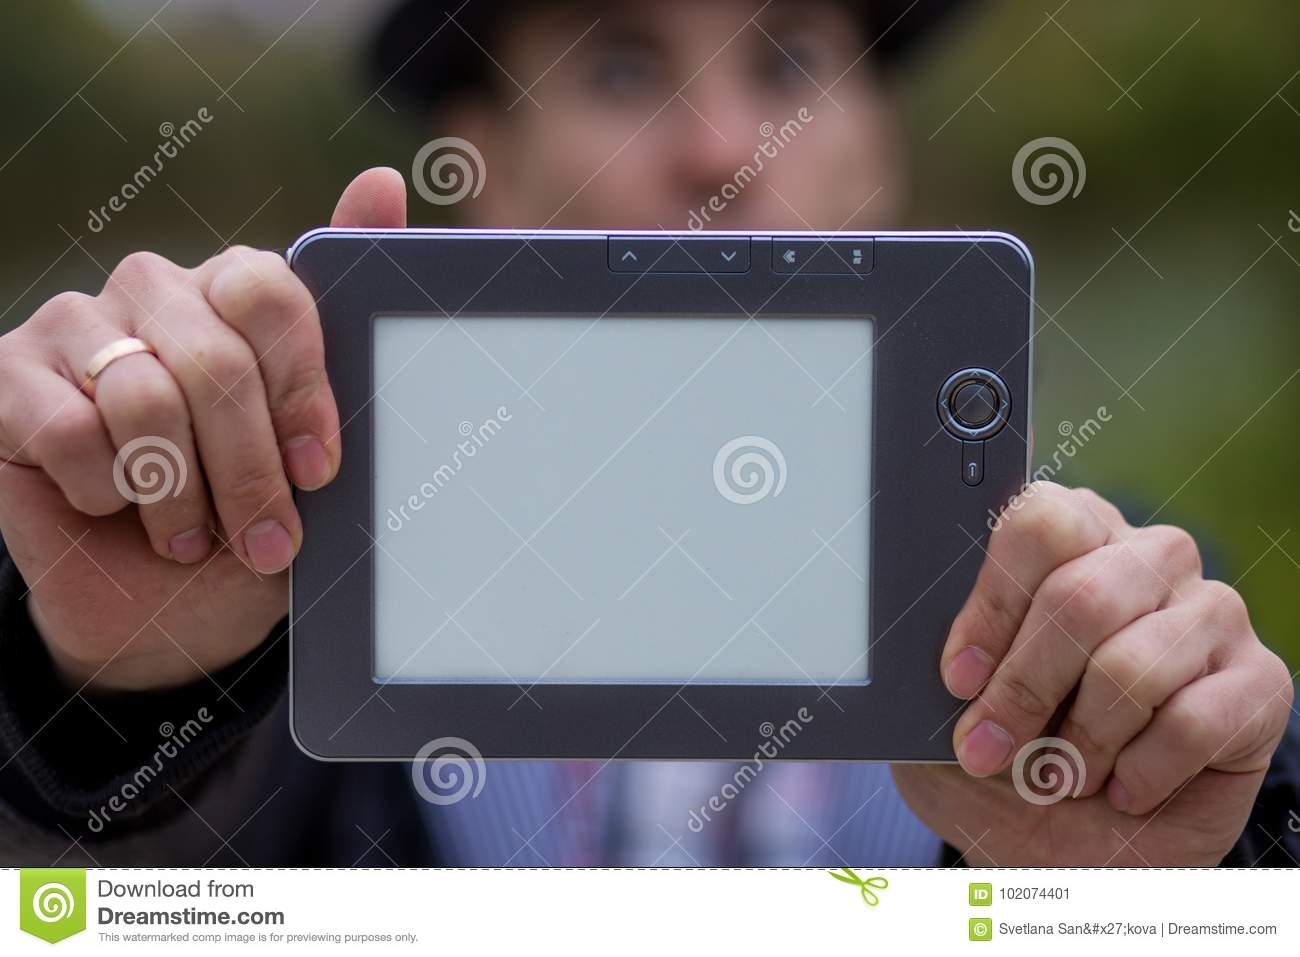 A young man holds a digital tablet in front of him